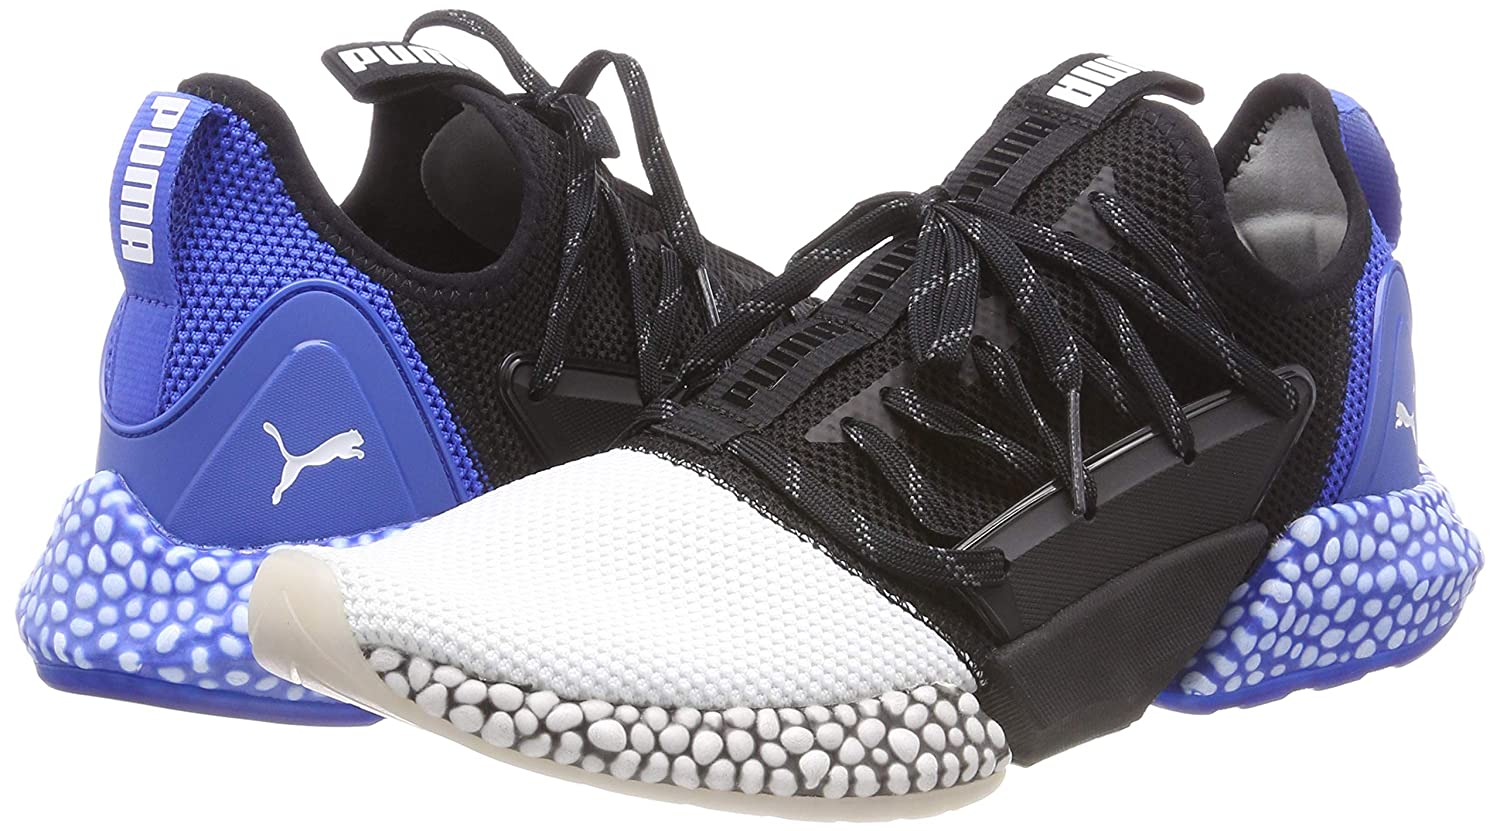 Running ShoesBuy Puma Men's Hybrid At Runner Online Low Rocket xeWrdCoQB